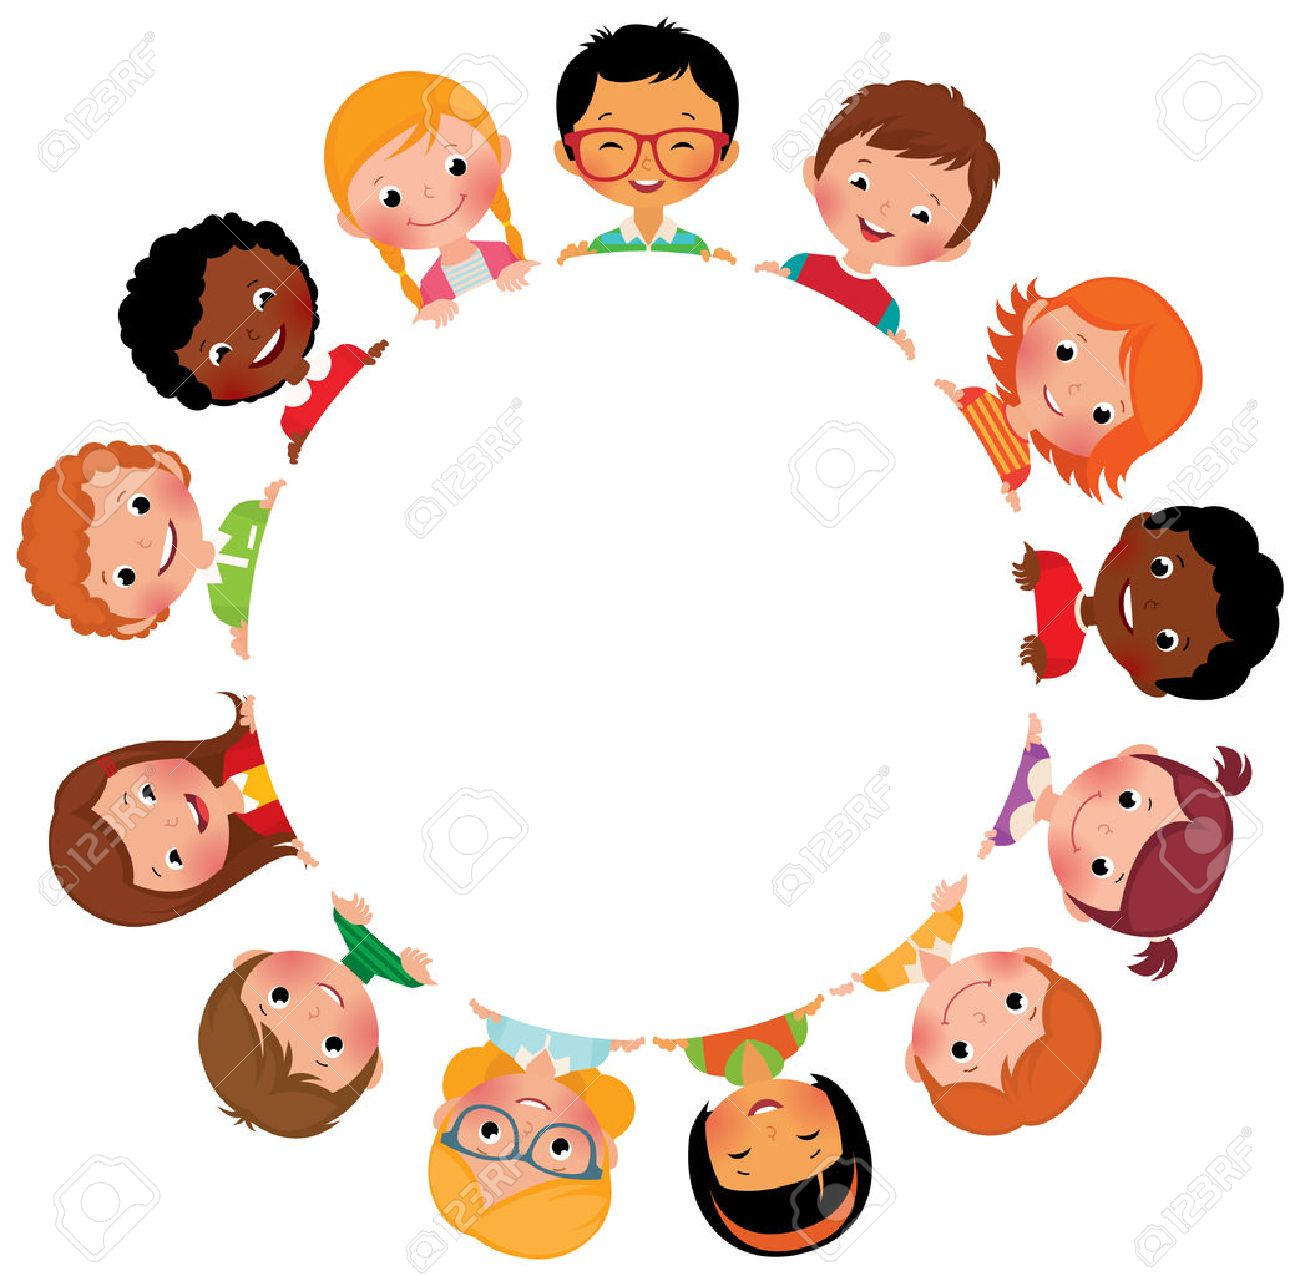 Stock vector illustration of kids friends from around the world around the white circle - 35804122